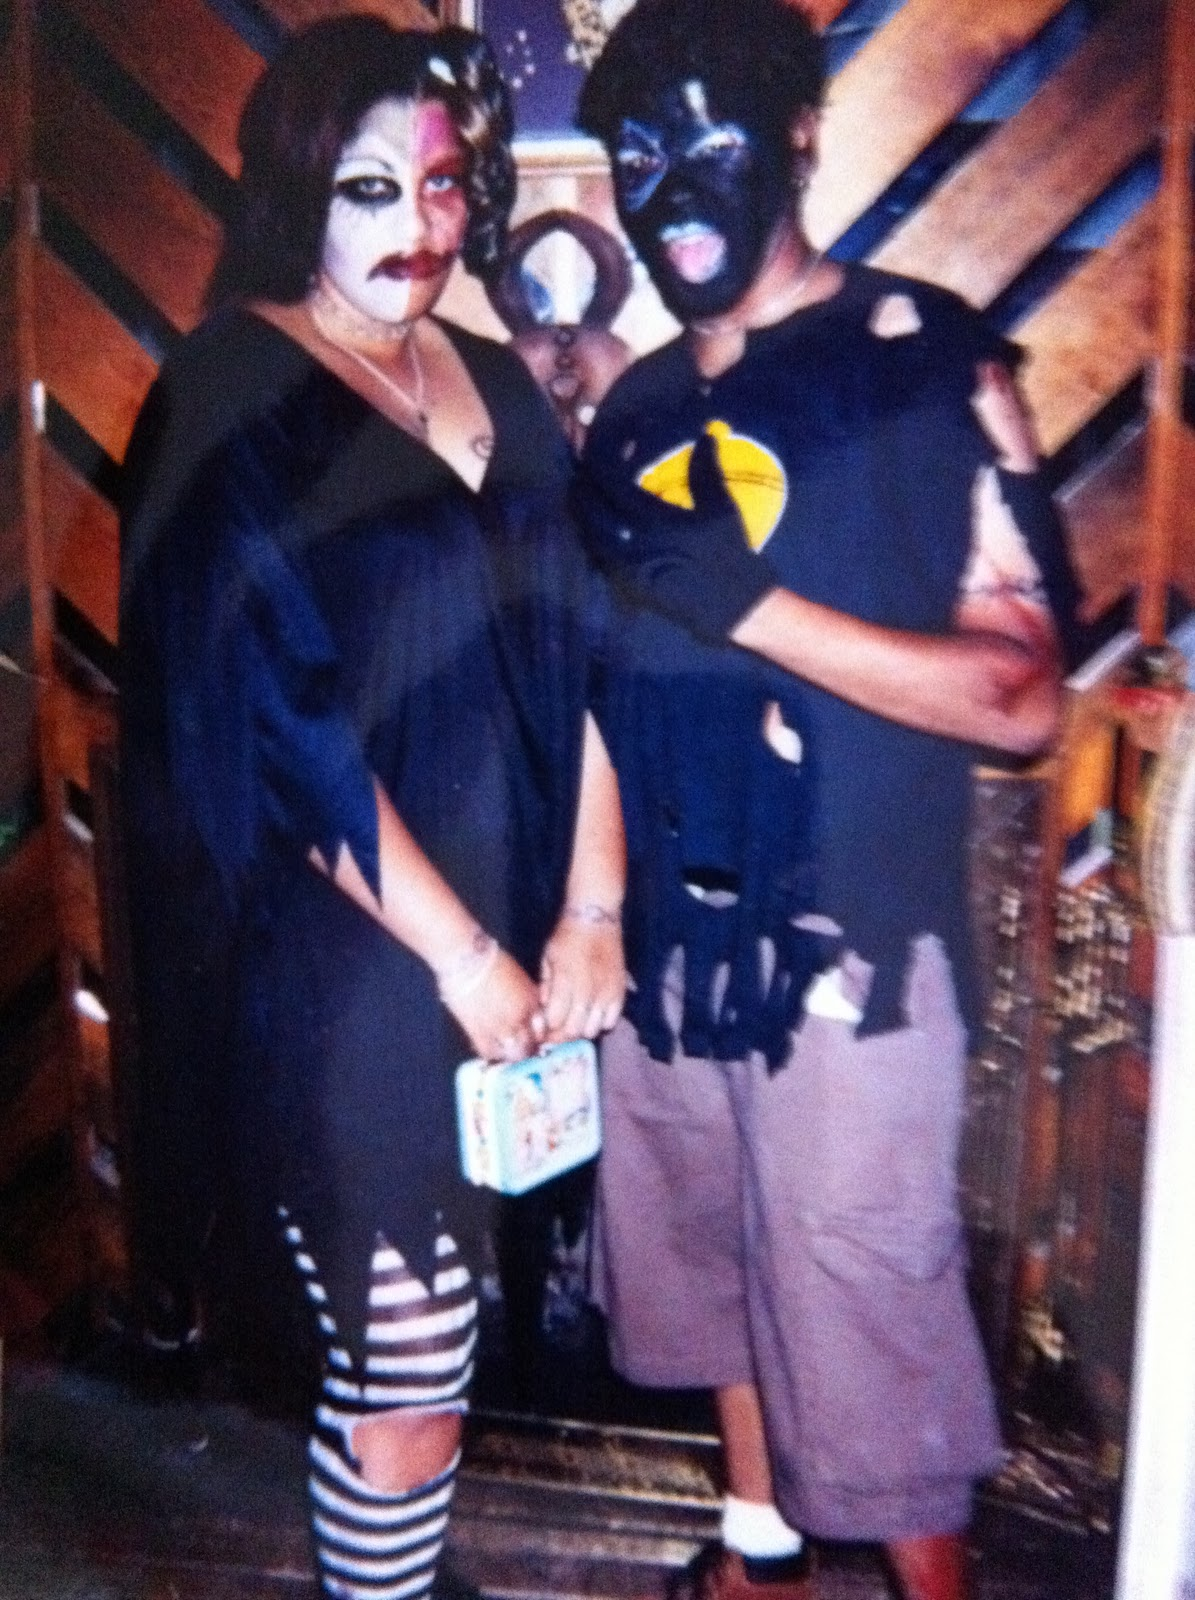 halloween costumes: a collection -